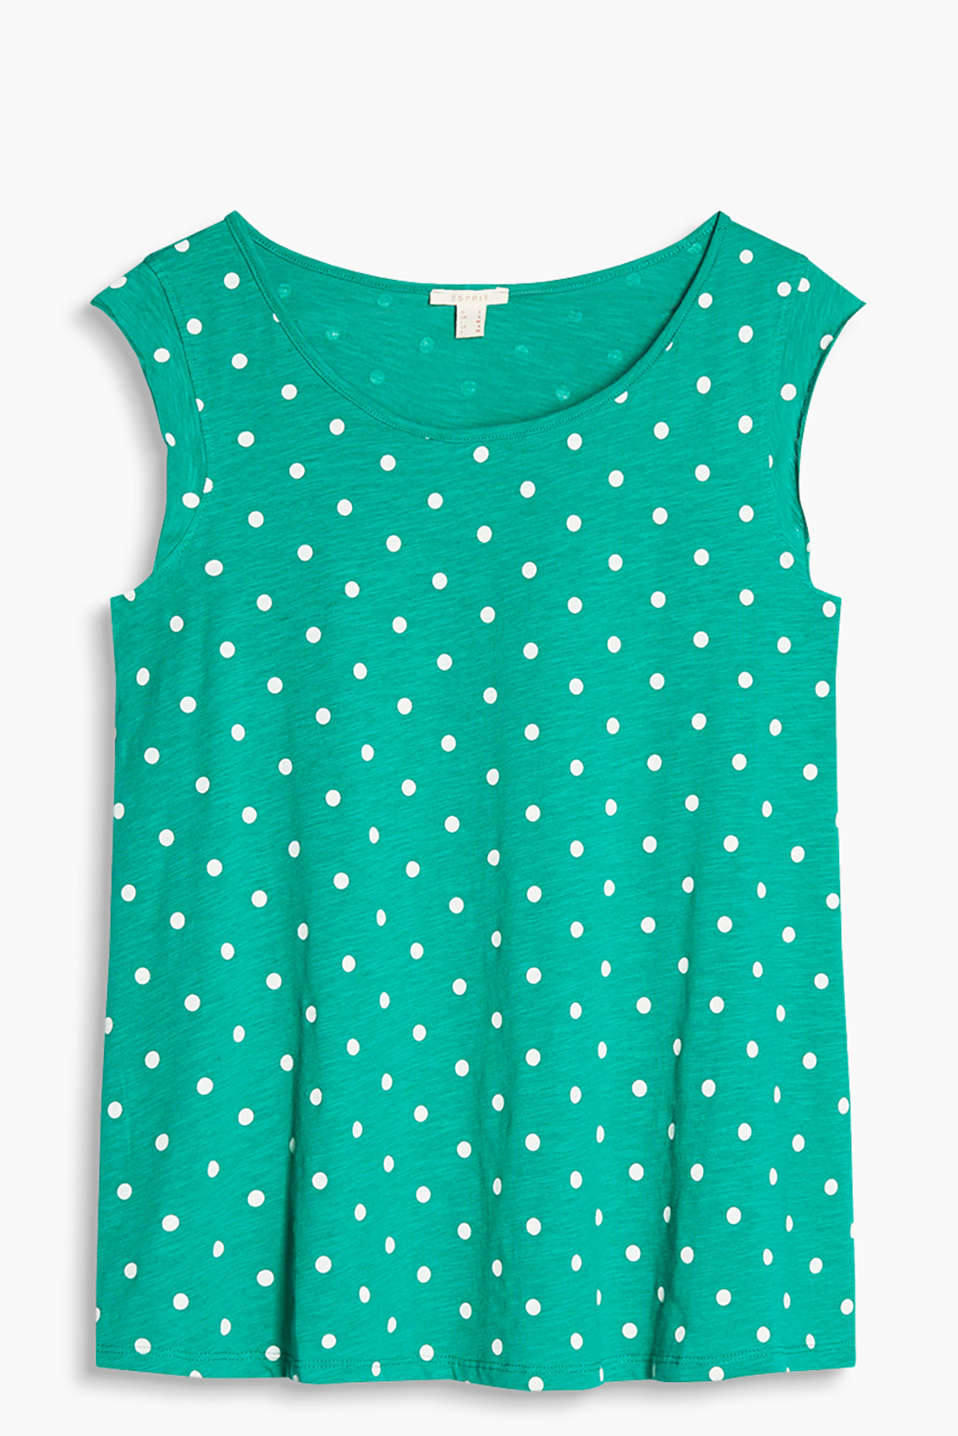 Floaty slub jersey T-shirt in a fashionable A-line design with polka dots, short cap sleeves, 100% cotton